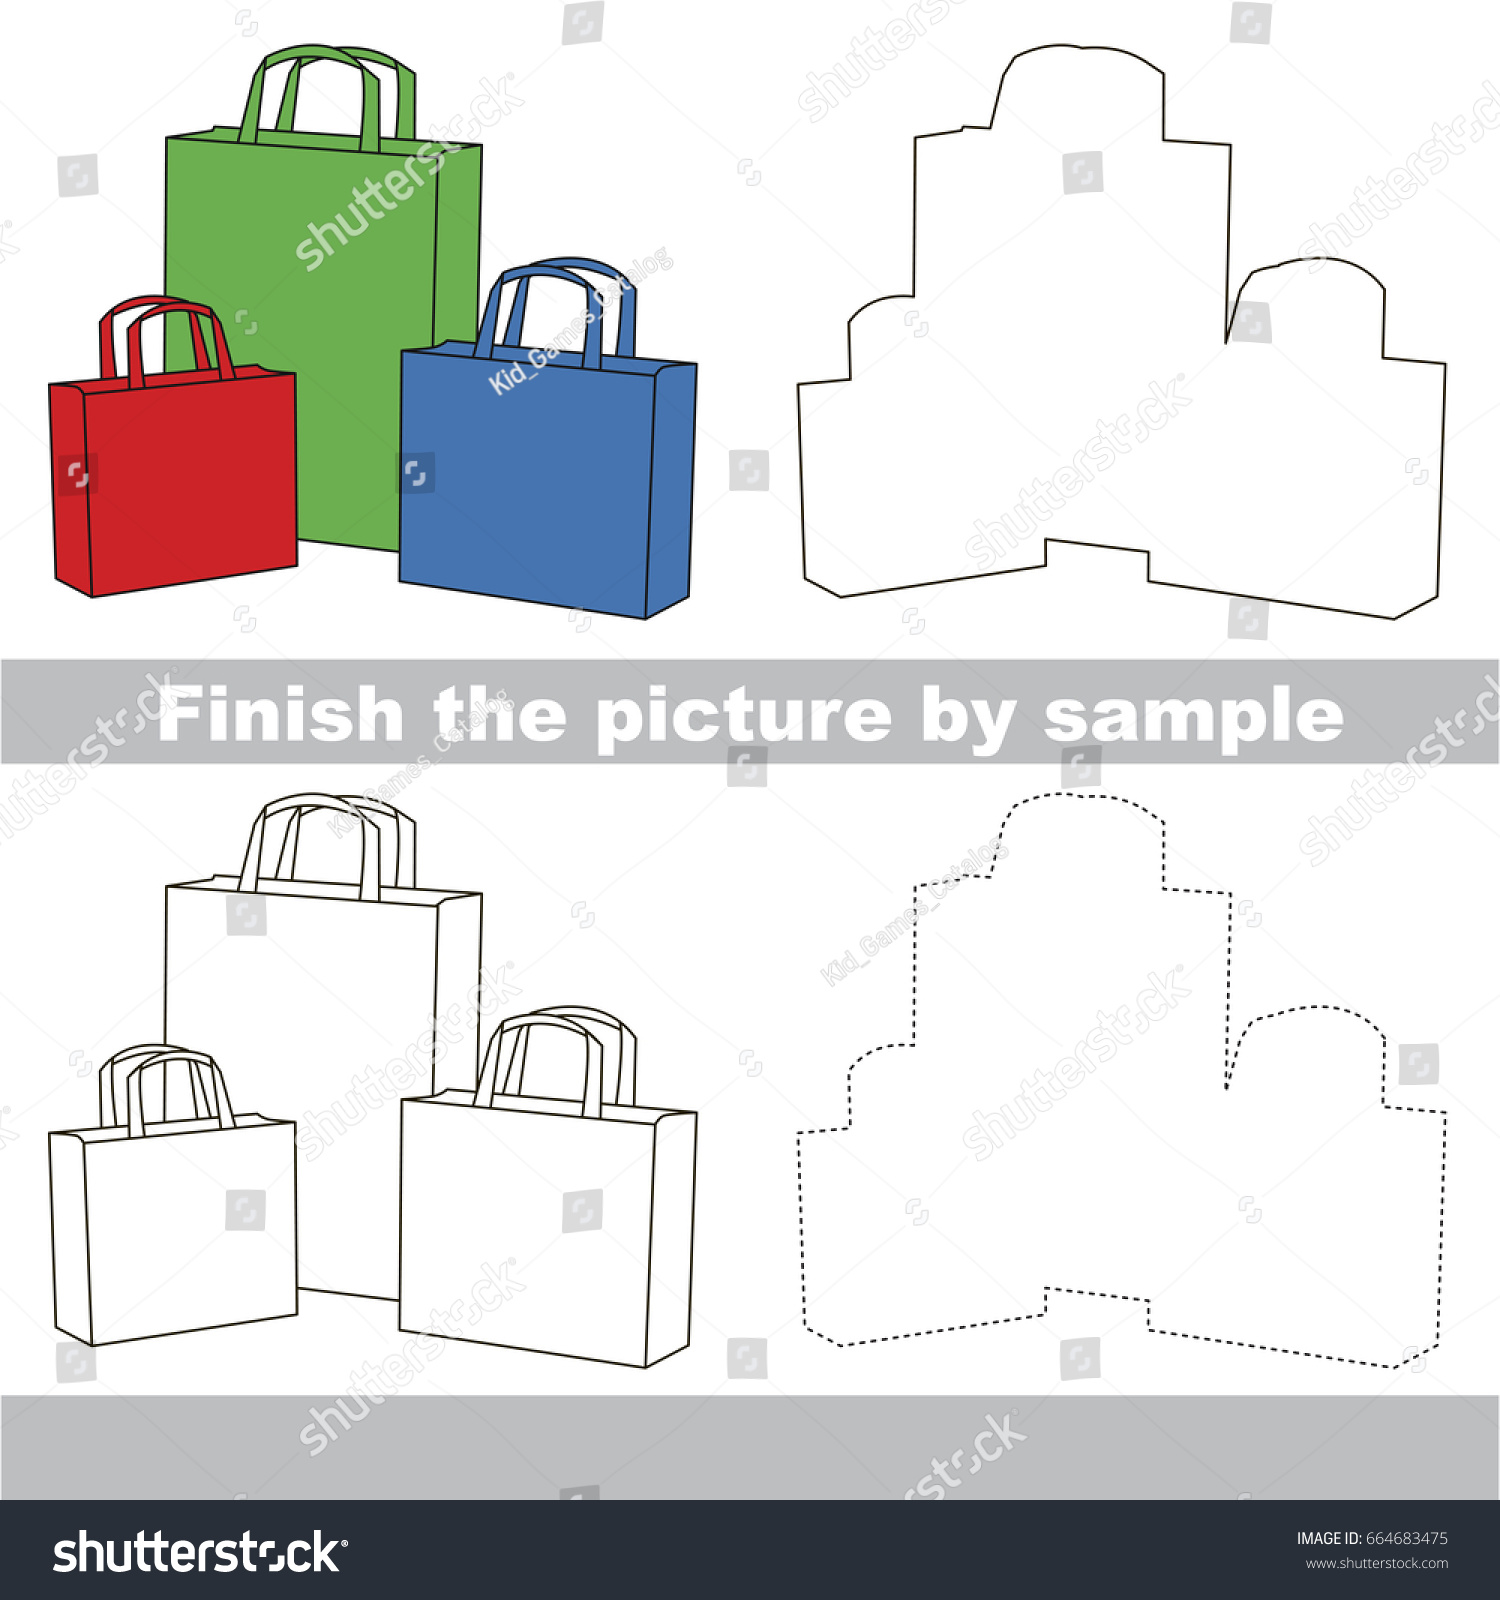 drawing worksheet preschool kids easy gaming stock vector 664683475 shutterstock. Black Bedroom Furniture Sets. Home Design Ideas